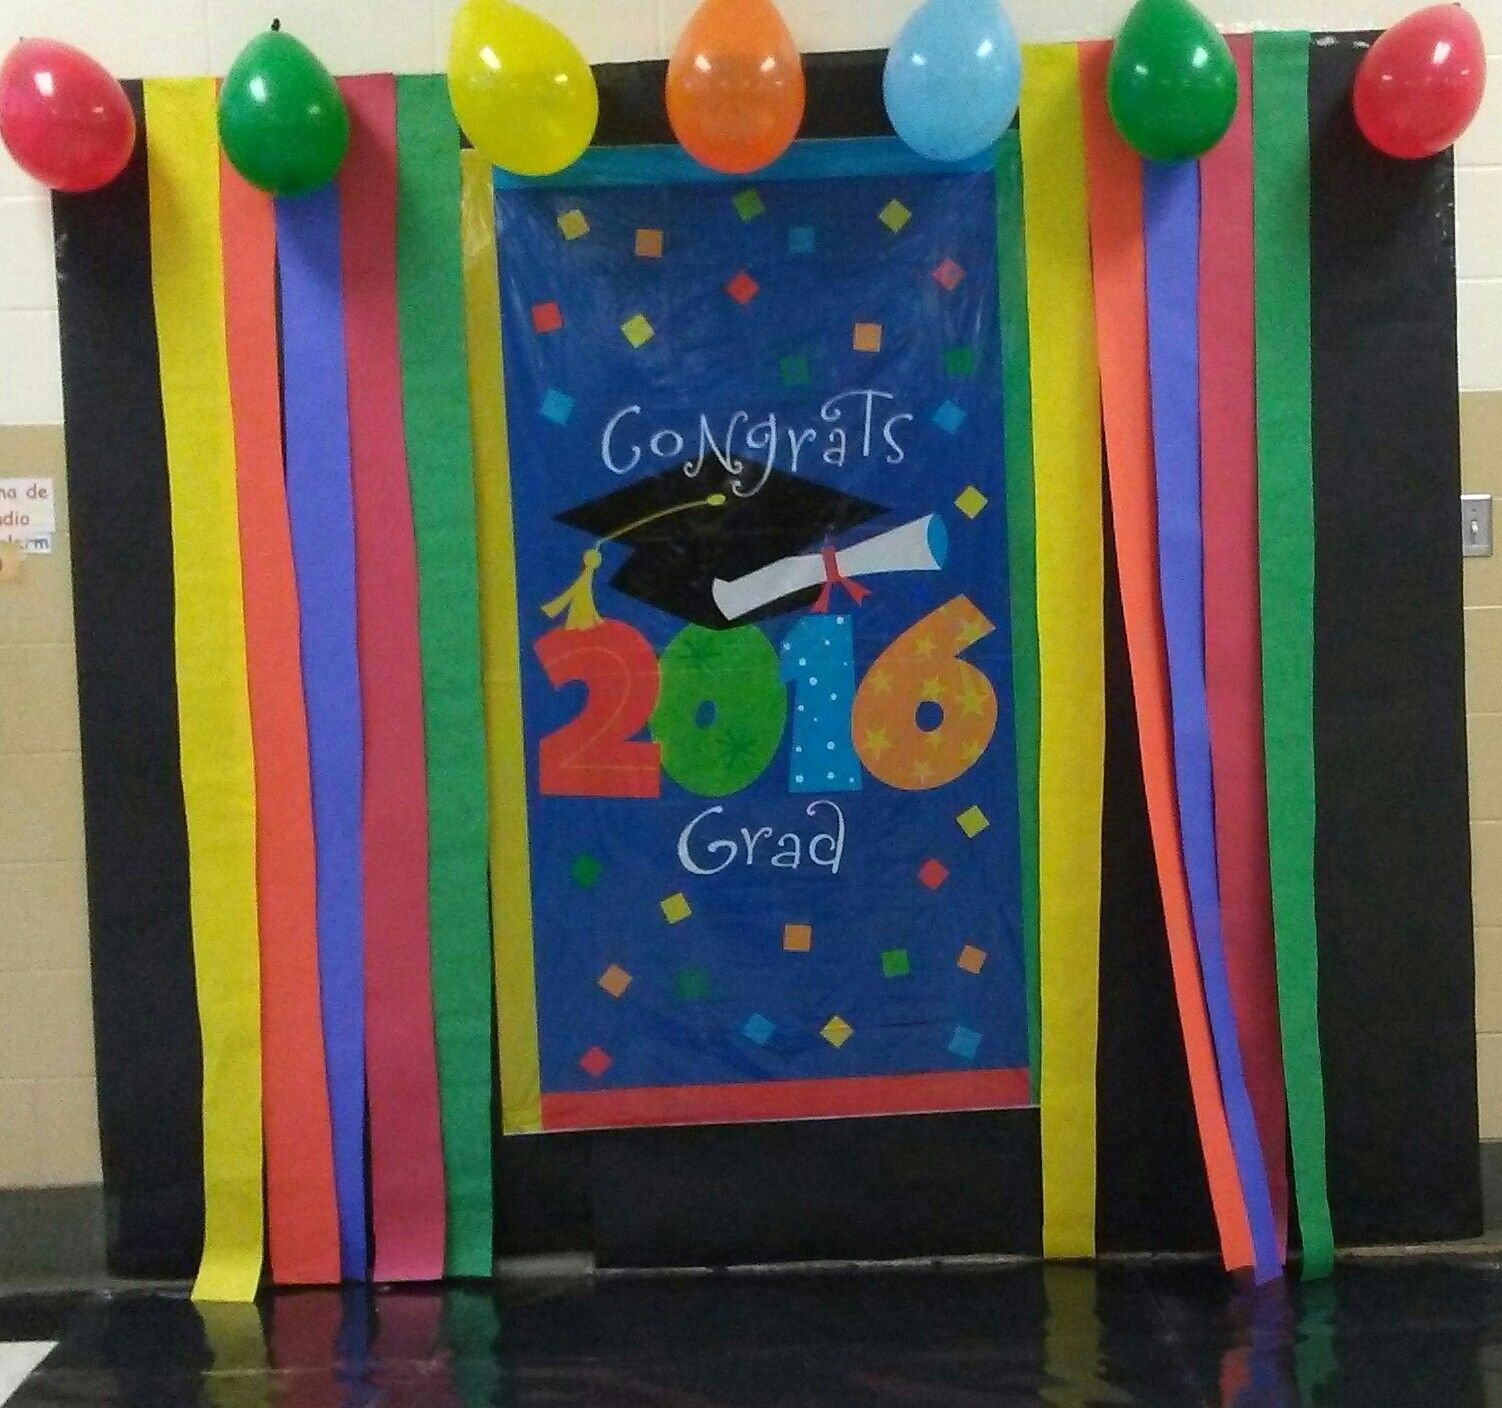 Pre Kinder Graduation Backdrop Kids Graduation Kindergarten Graduation Kindergarten Graduation Decorations